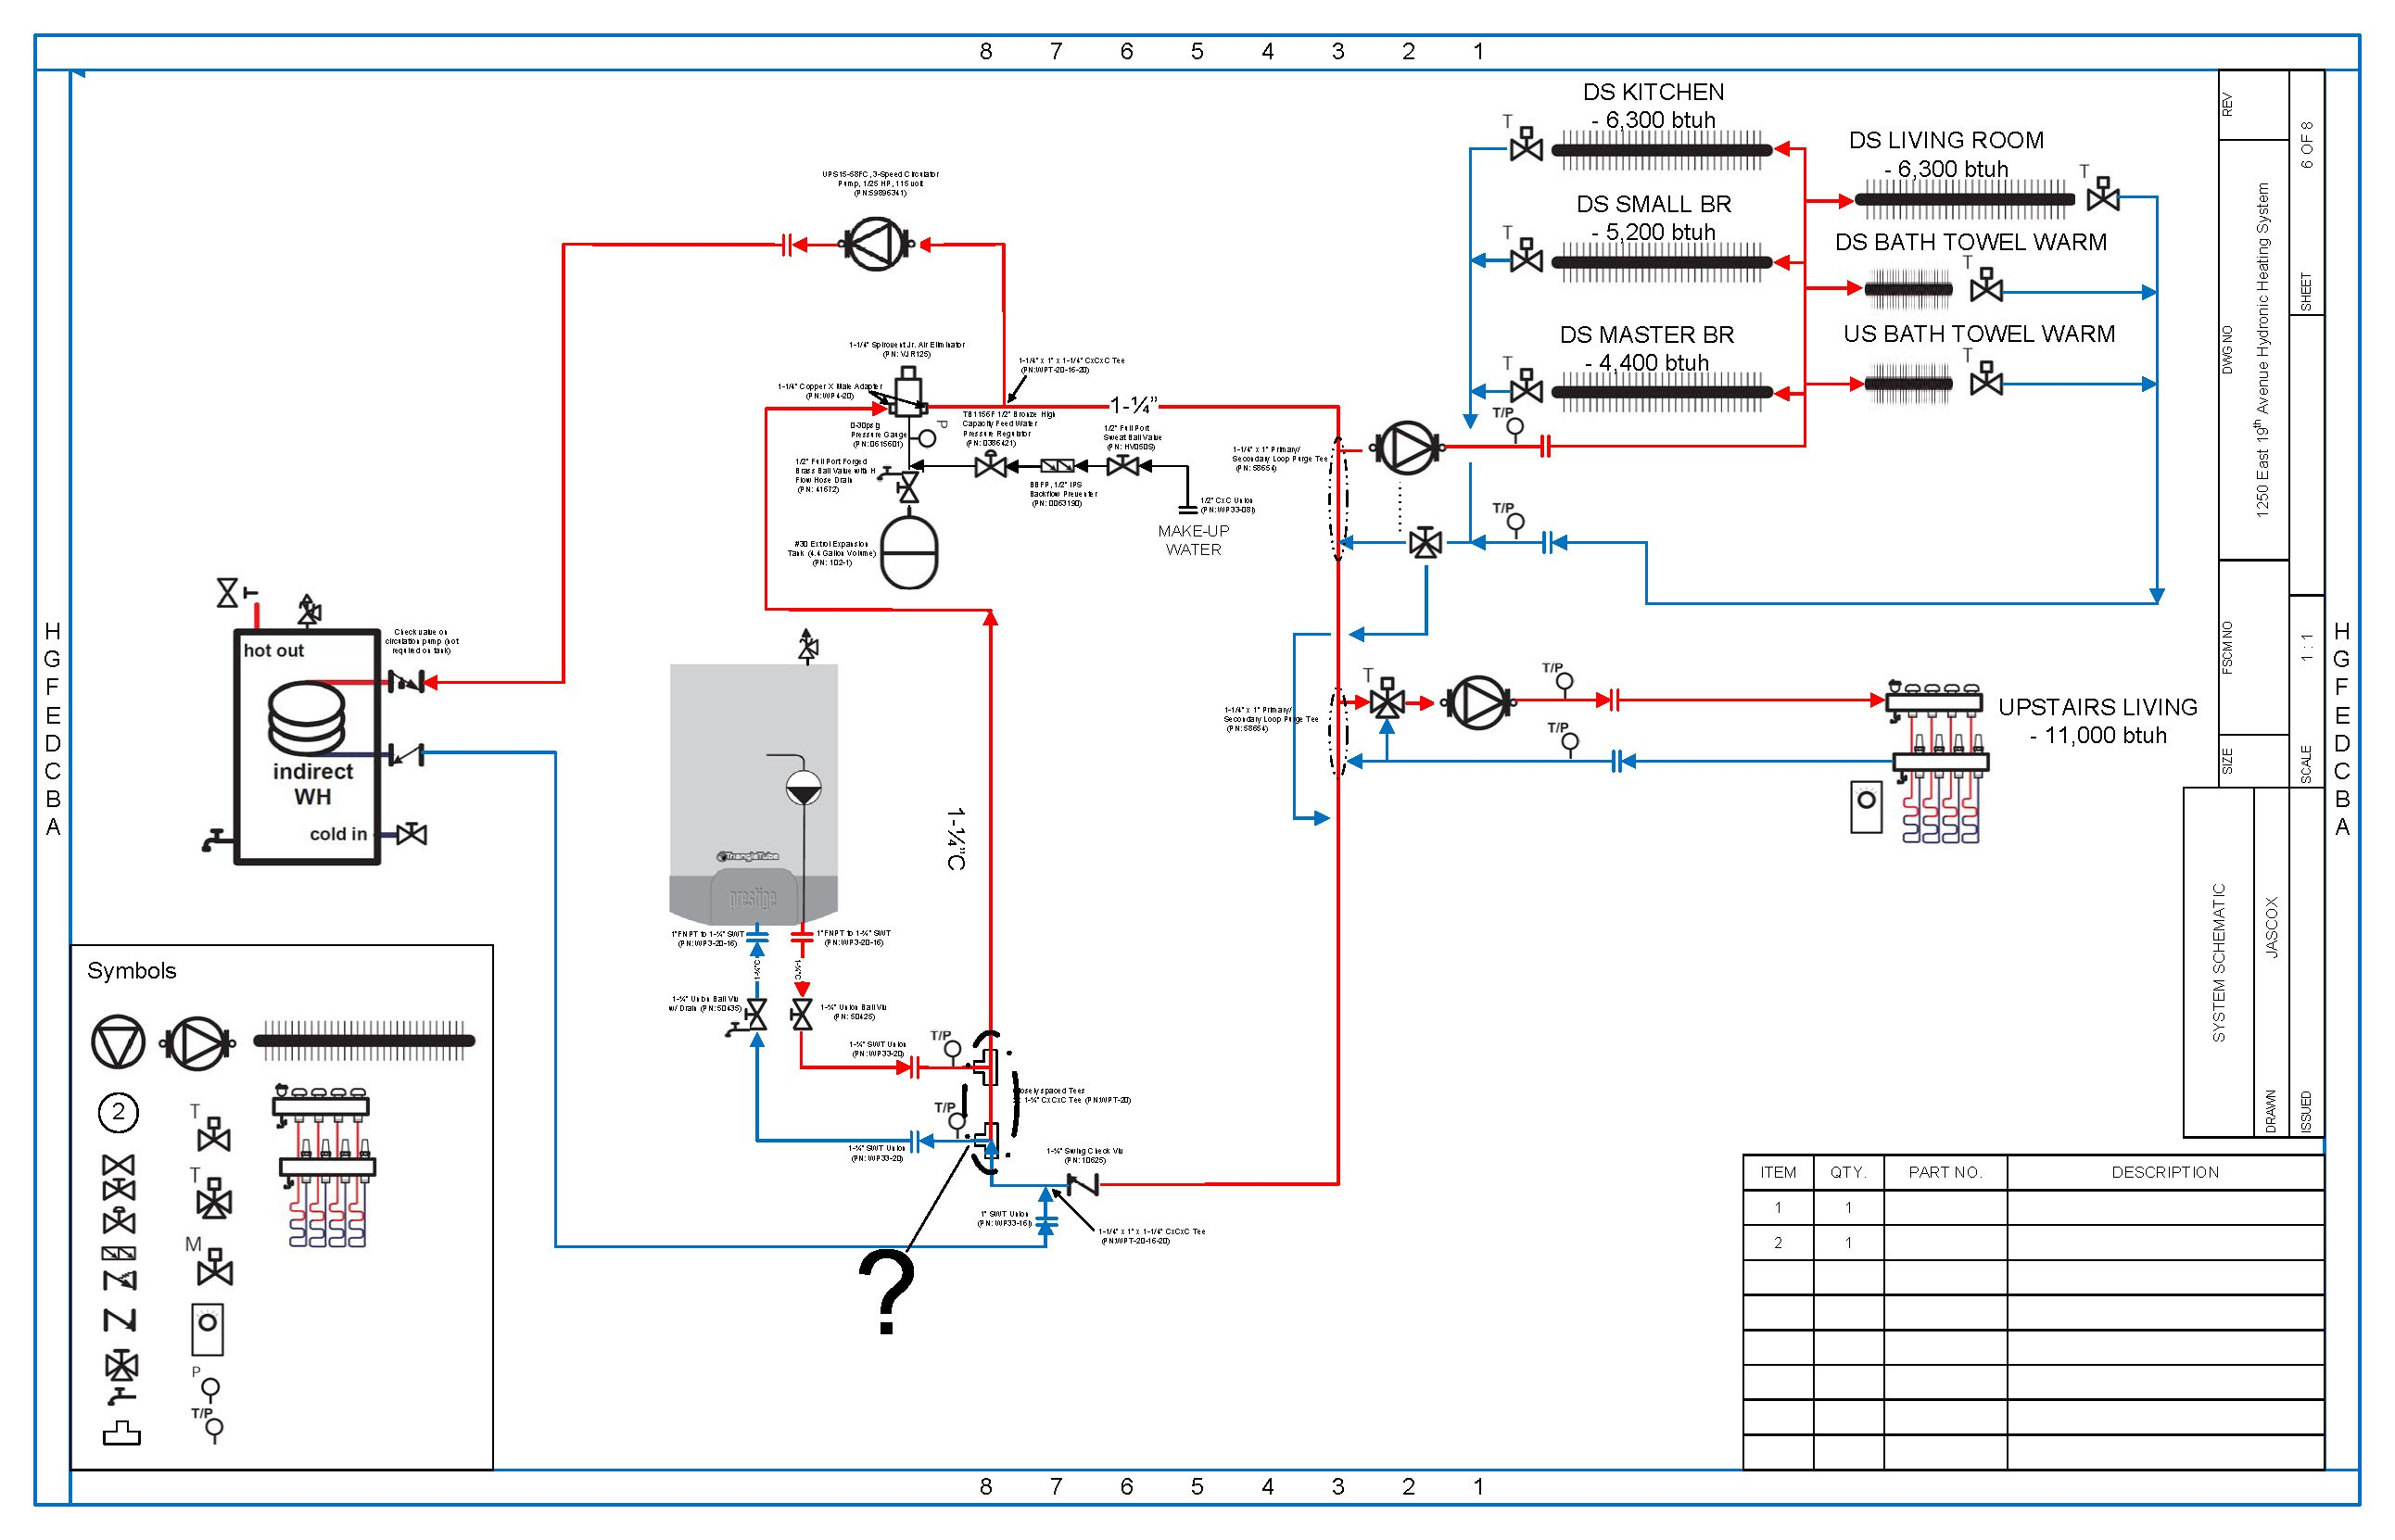 Electric Oven Wiring Diagram Free Image Wiring Diagram Engine